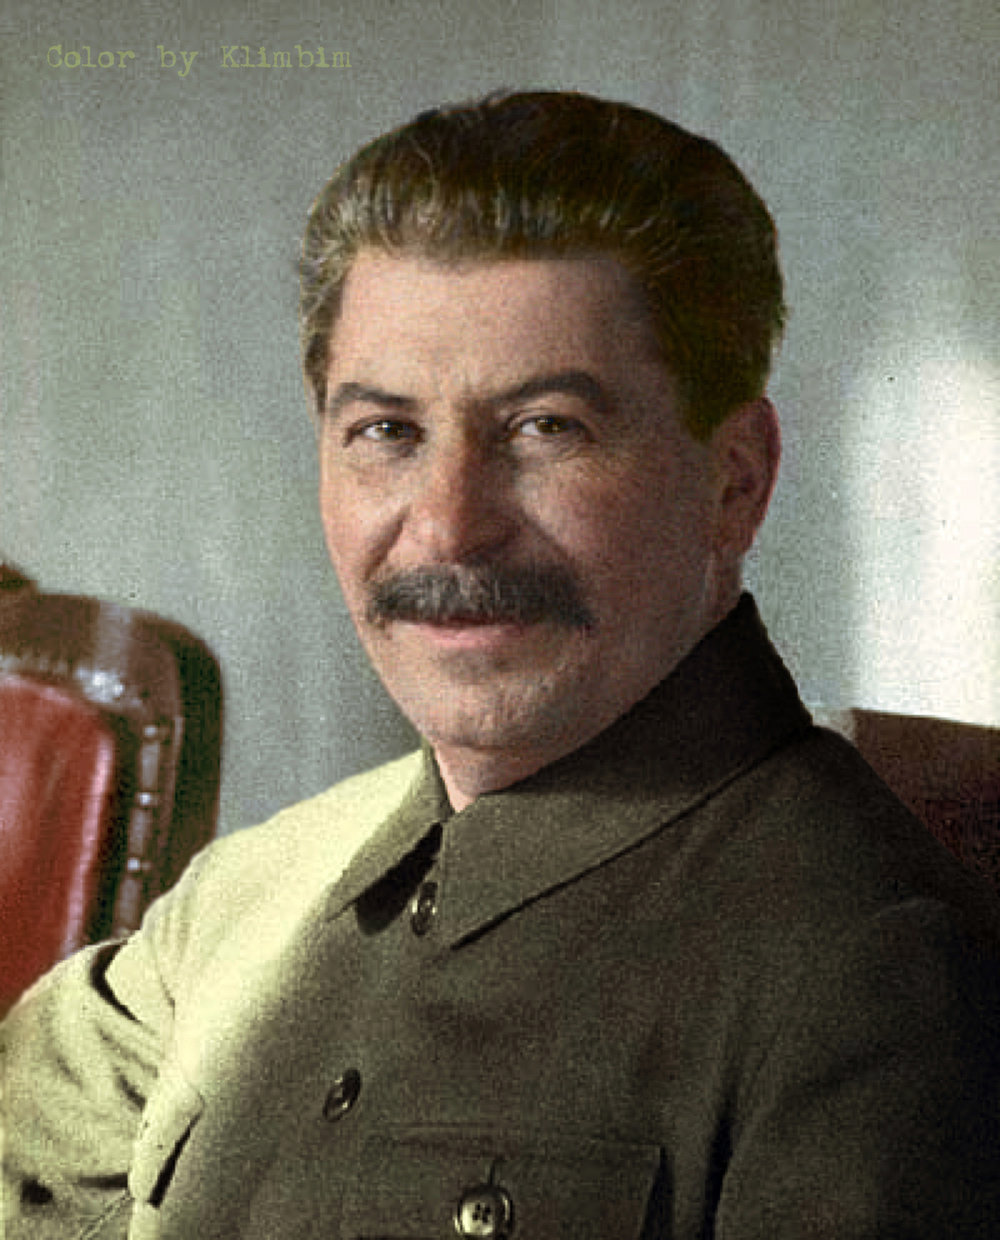 Photograph of Joseph Stalin, leader of the Soviet Union from the late 1920s until his death in 1952. This was taken at the Kremlin in Moscow in 1932. Colorization by  Klimbim